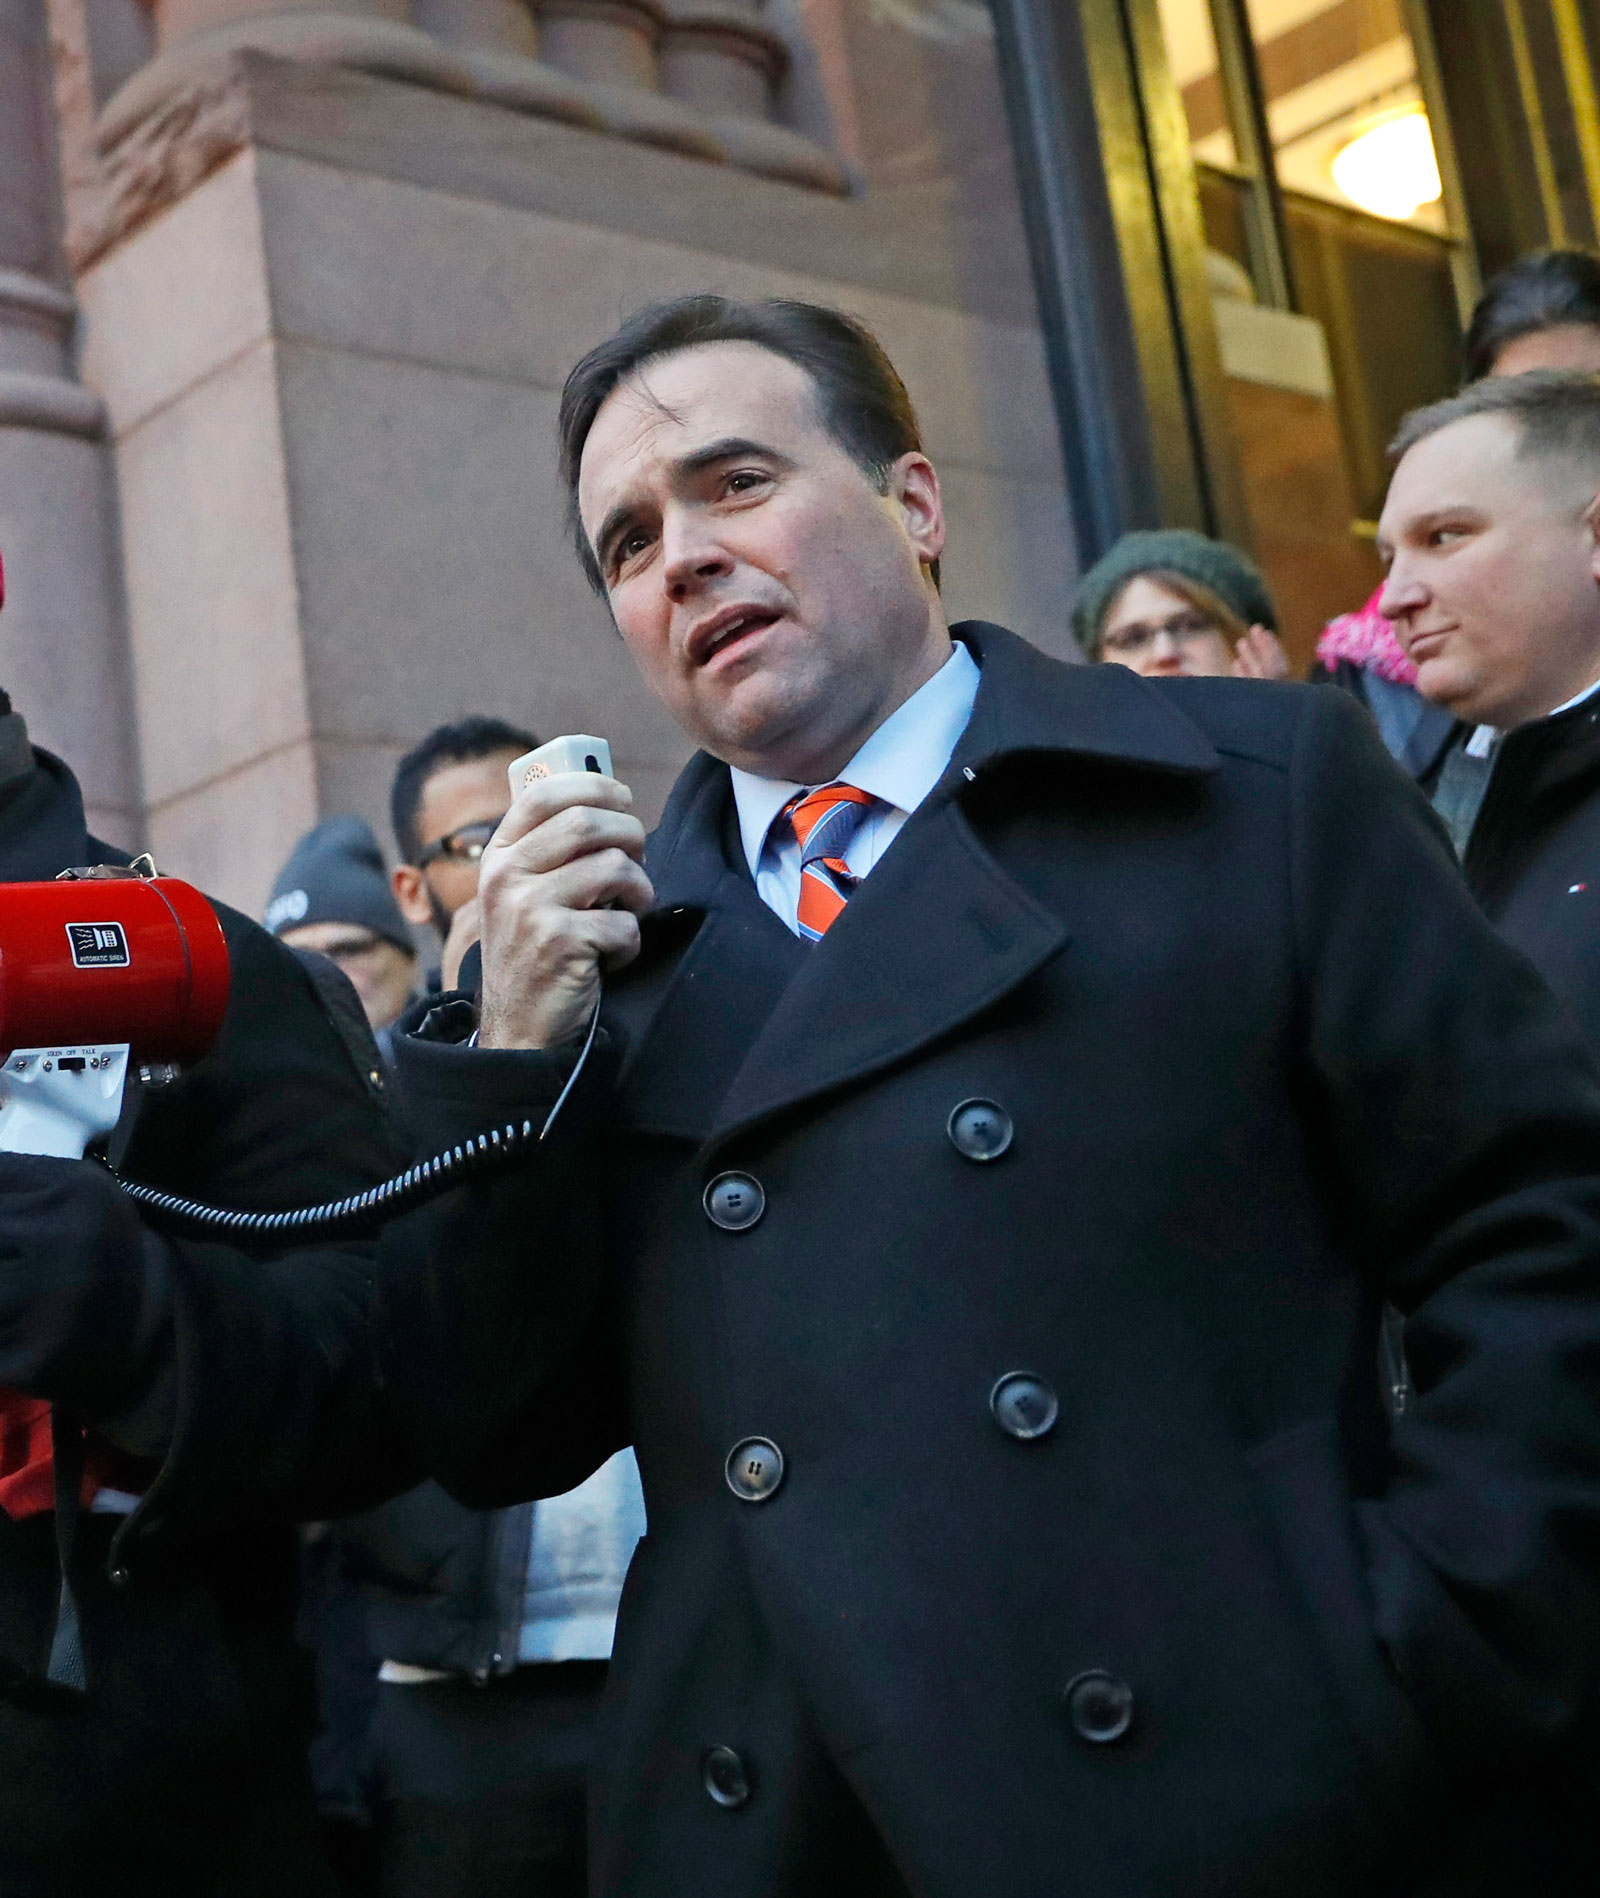 Mayor John Cranley at a protest against the immigration order, Cincinnati, Ohio, January 30, 2017